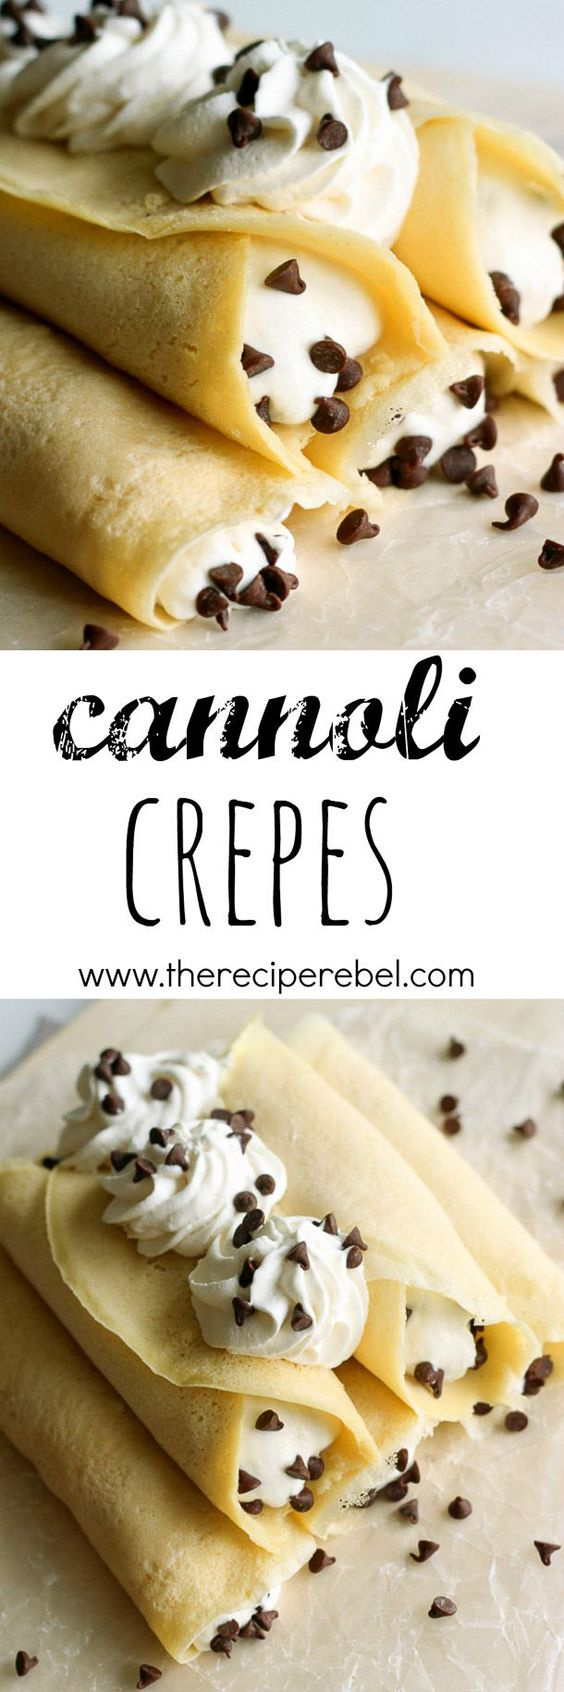 : Soft homemade crepes filled with sweet ricotta cream and chocolate ...